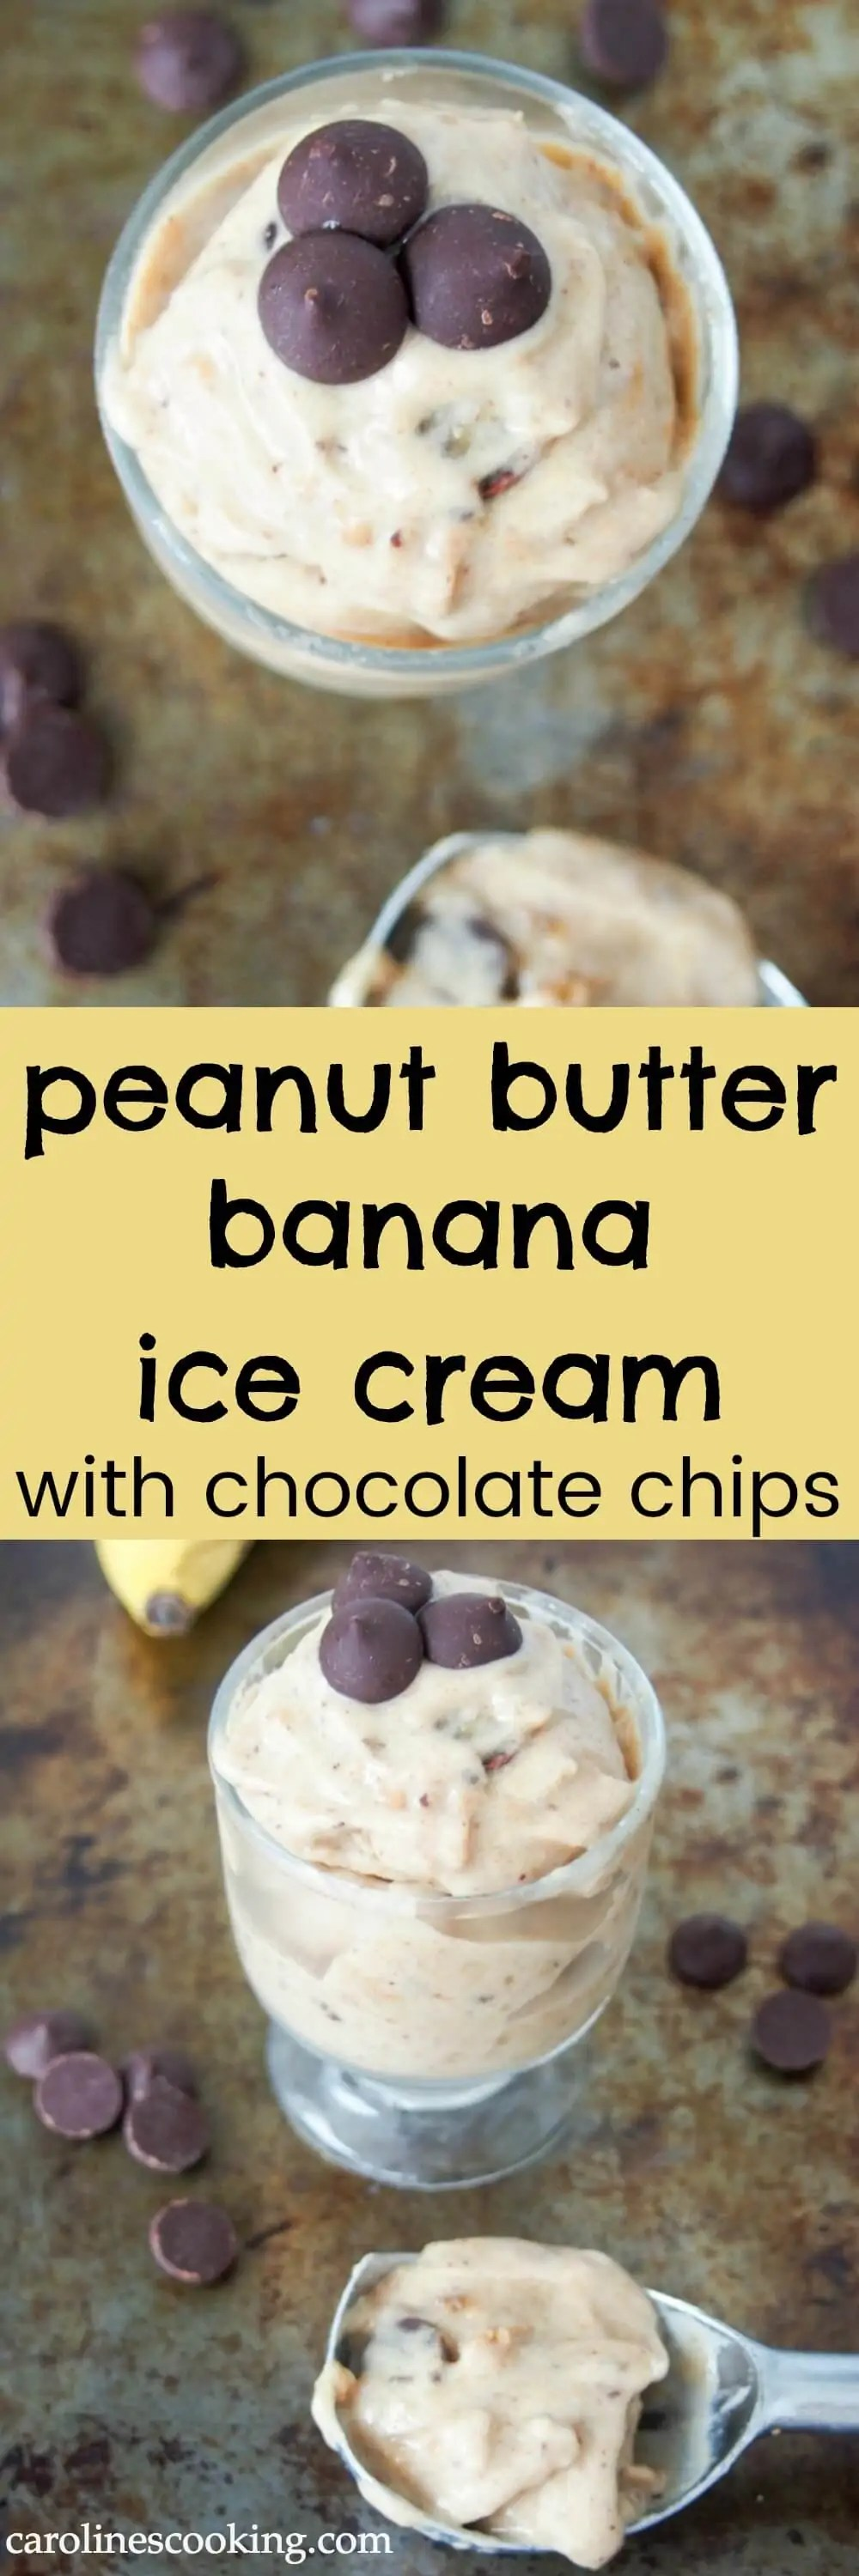 Don't waste those ripe bananas - freeze them to make this peanut butter banana ice cream with chocolate chips in minutes whenever you want it. So good! (vegan too)